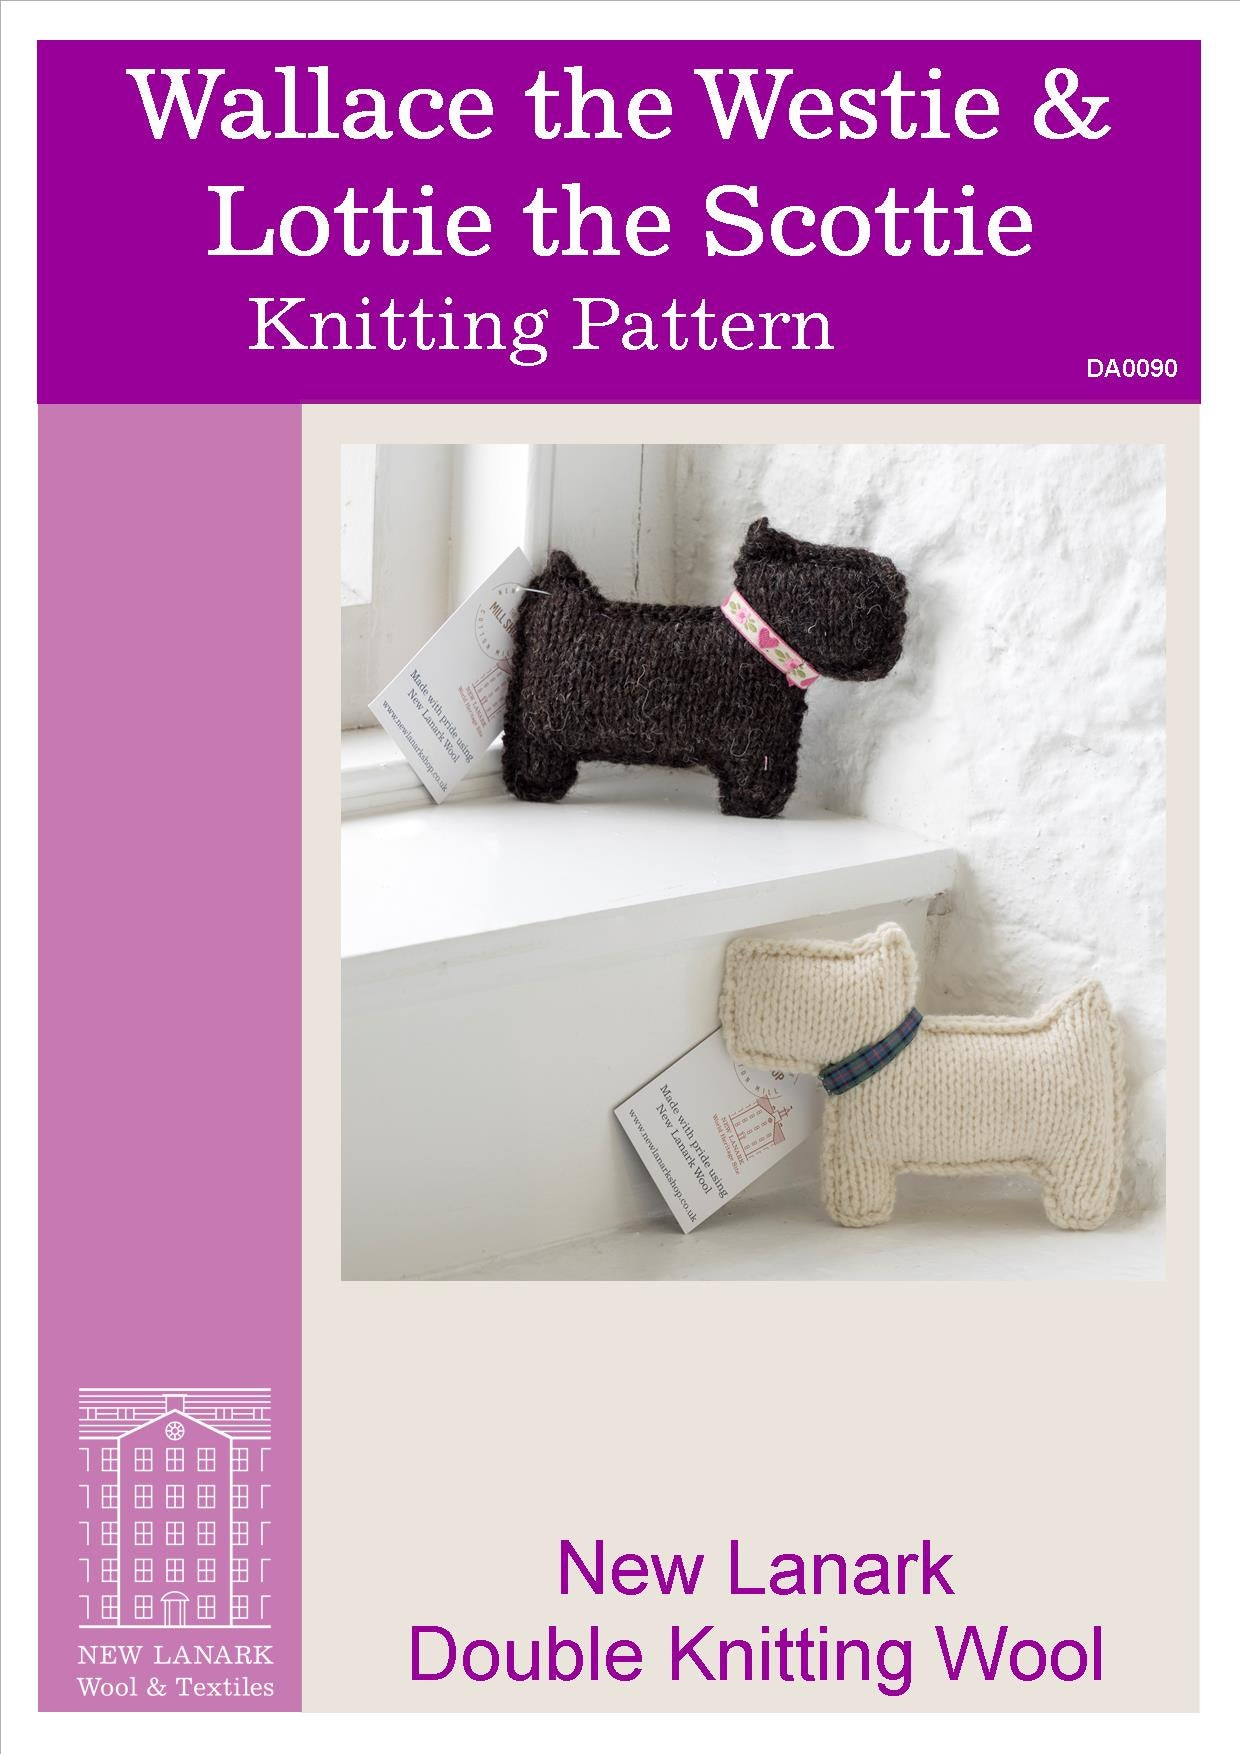 Wallace the Westie & Lottie the Scottie DK Pattern